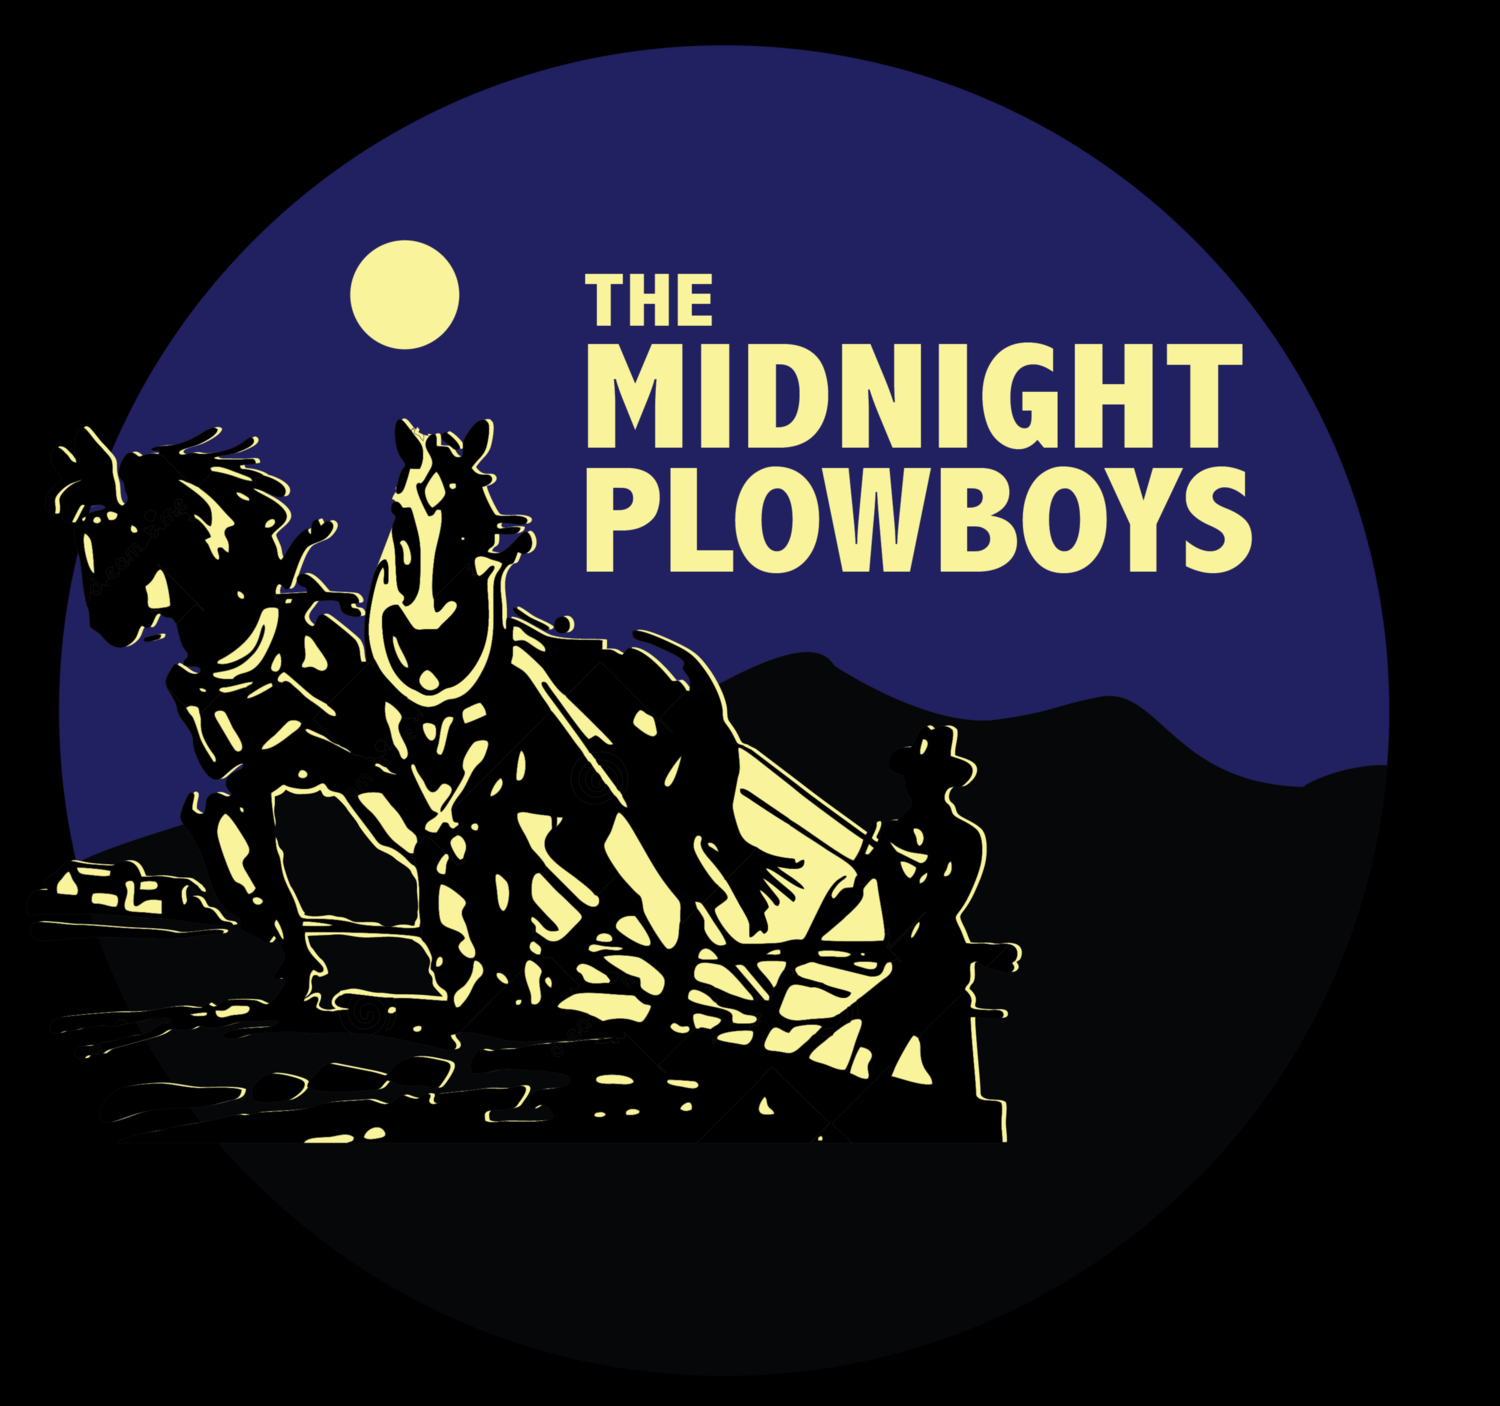 The Midnight Plowboys